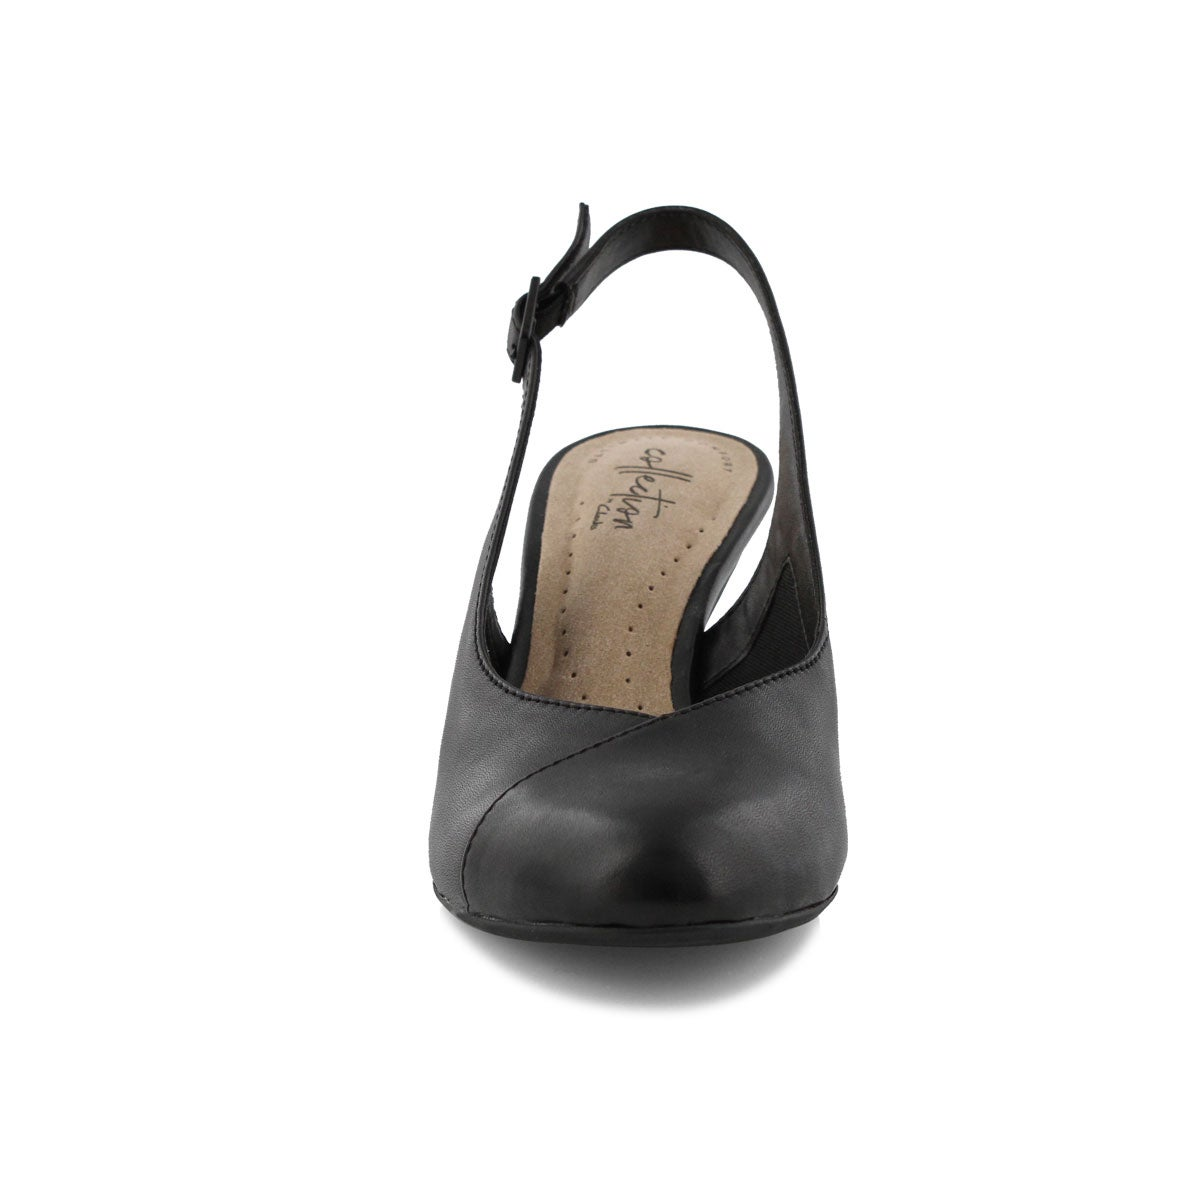 Lds Dancer Mix blk sling back heel